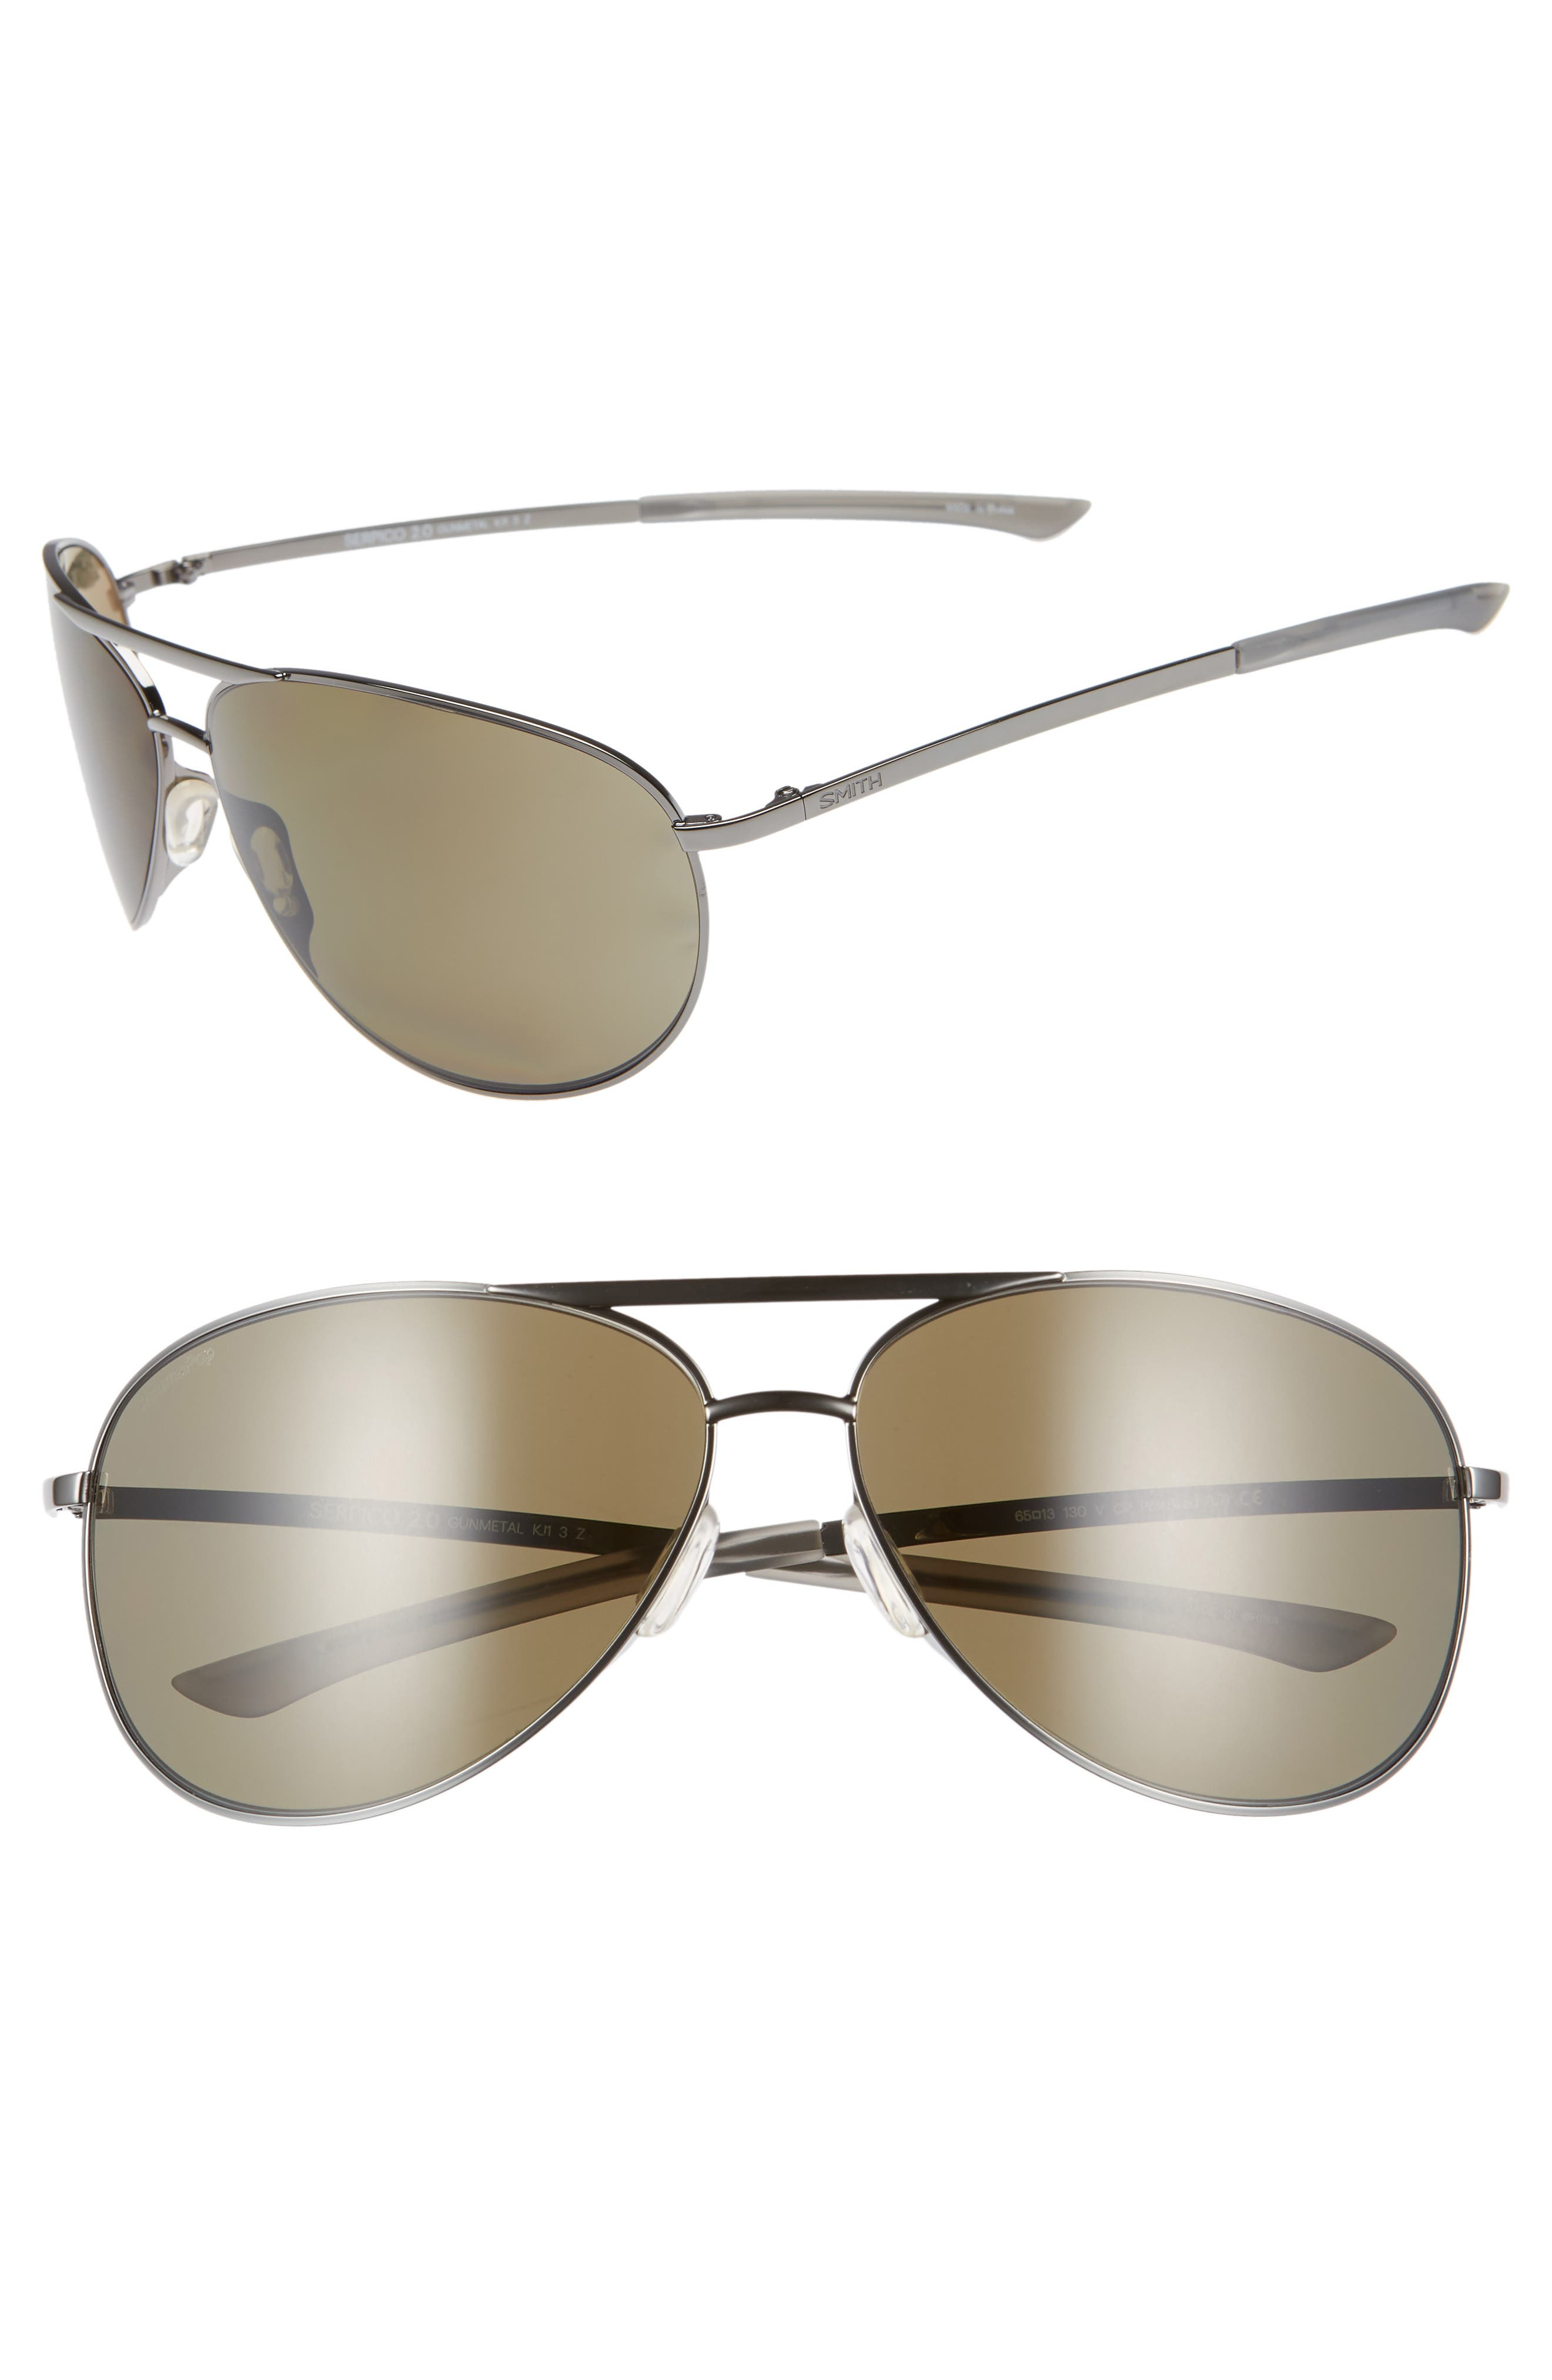 Serpico 2 65mm Mirrored ChromaPop<sup>™</sup> Polarized Aviator Sunglasses,                             Main thumbnail 1, color,                             GUNMETAL